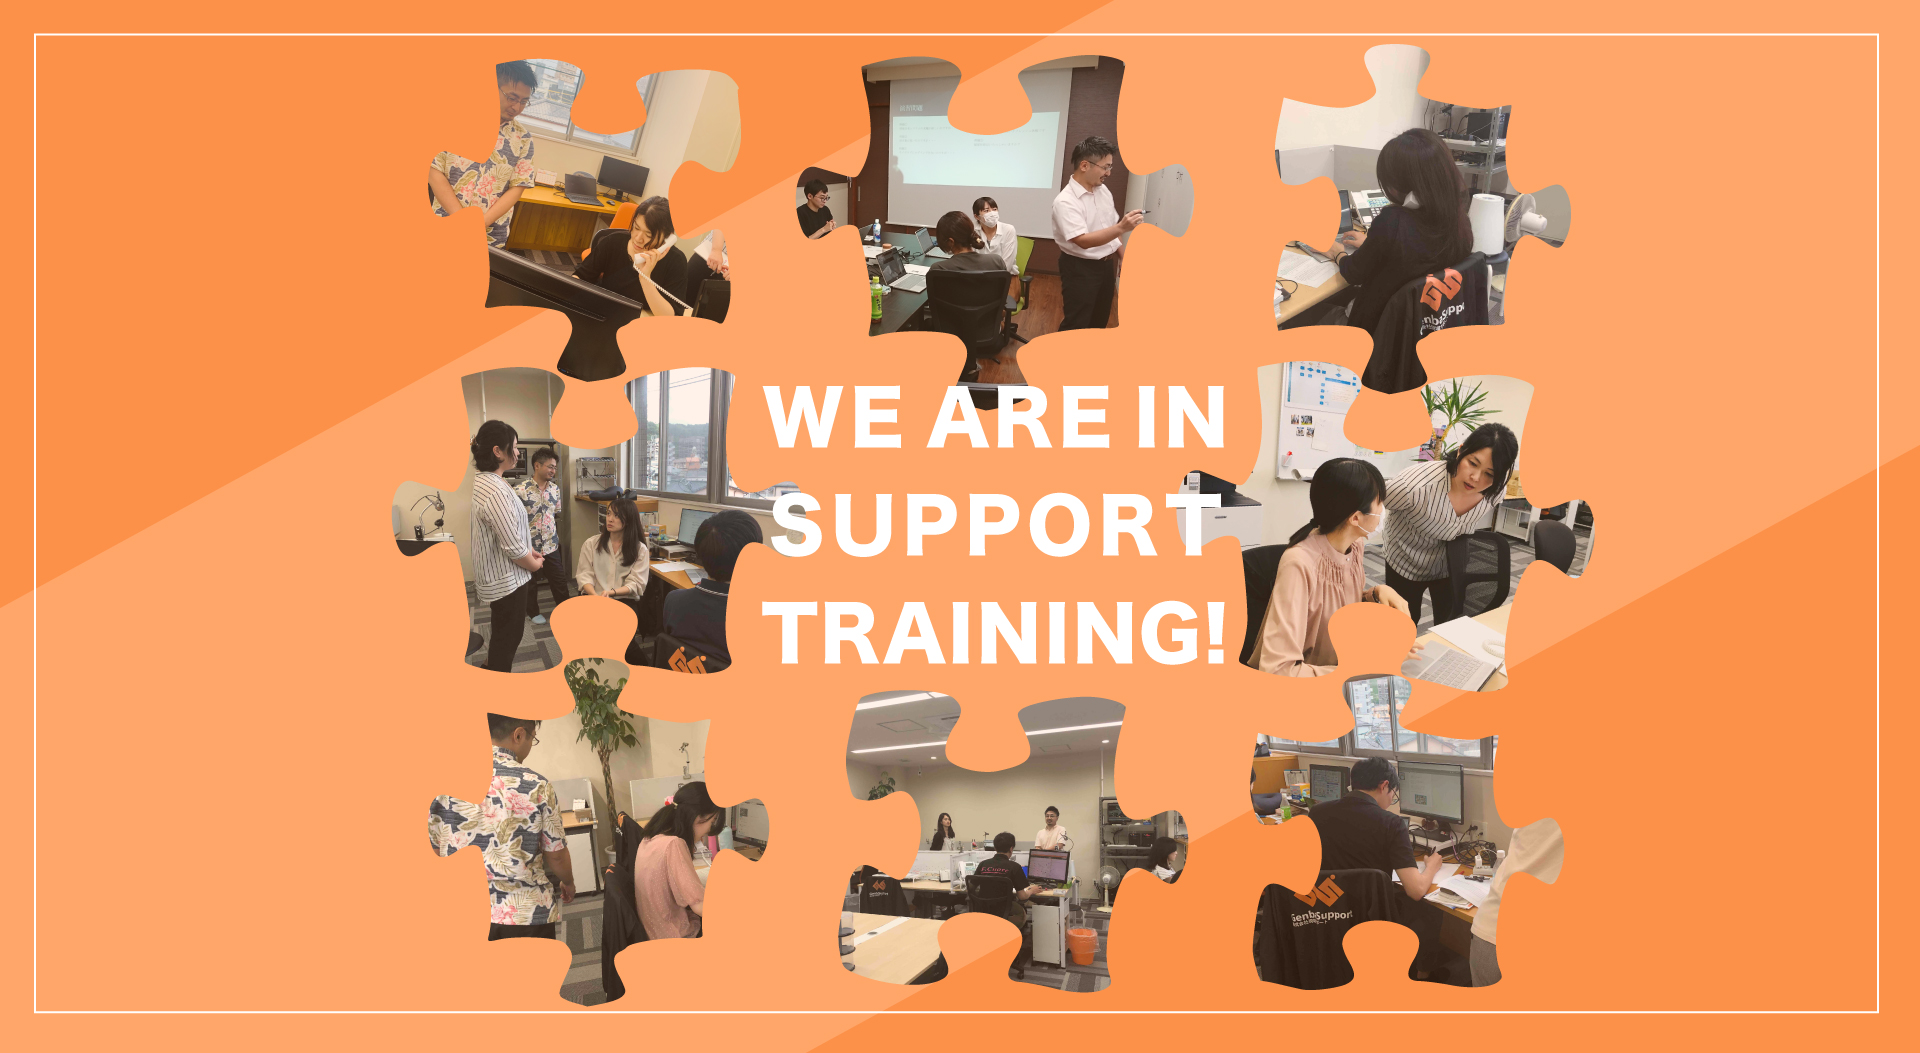 WE ARE IN SUPPORT TRAINING